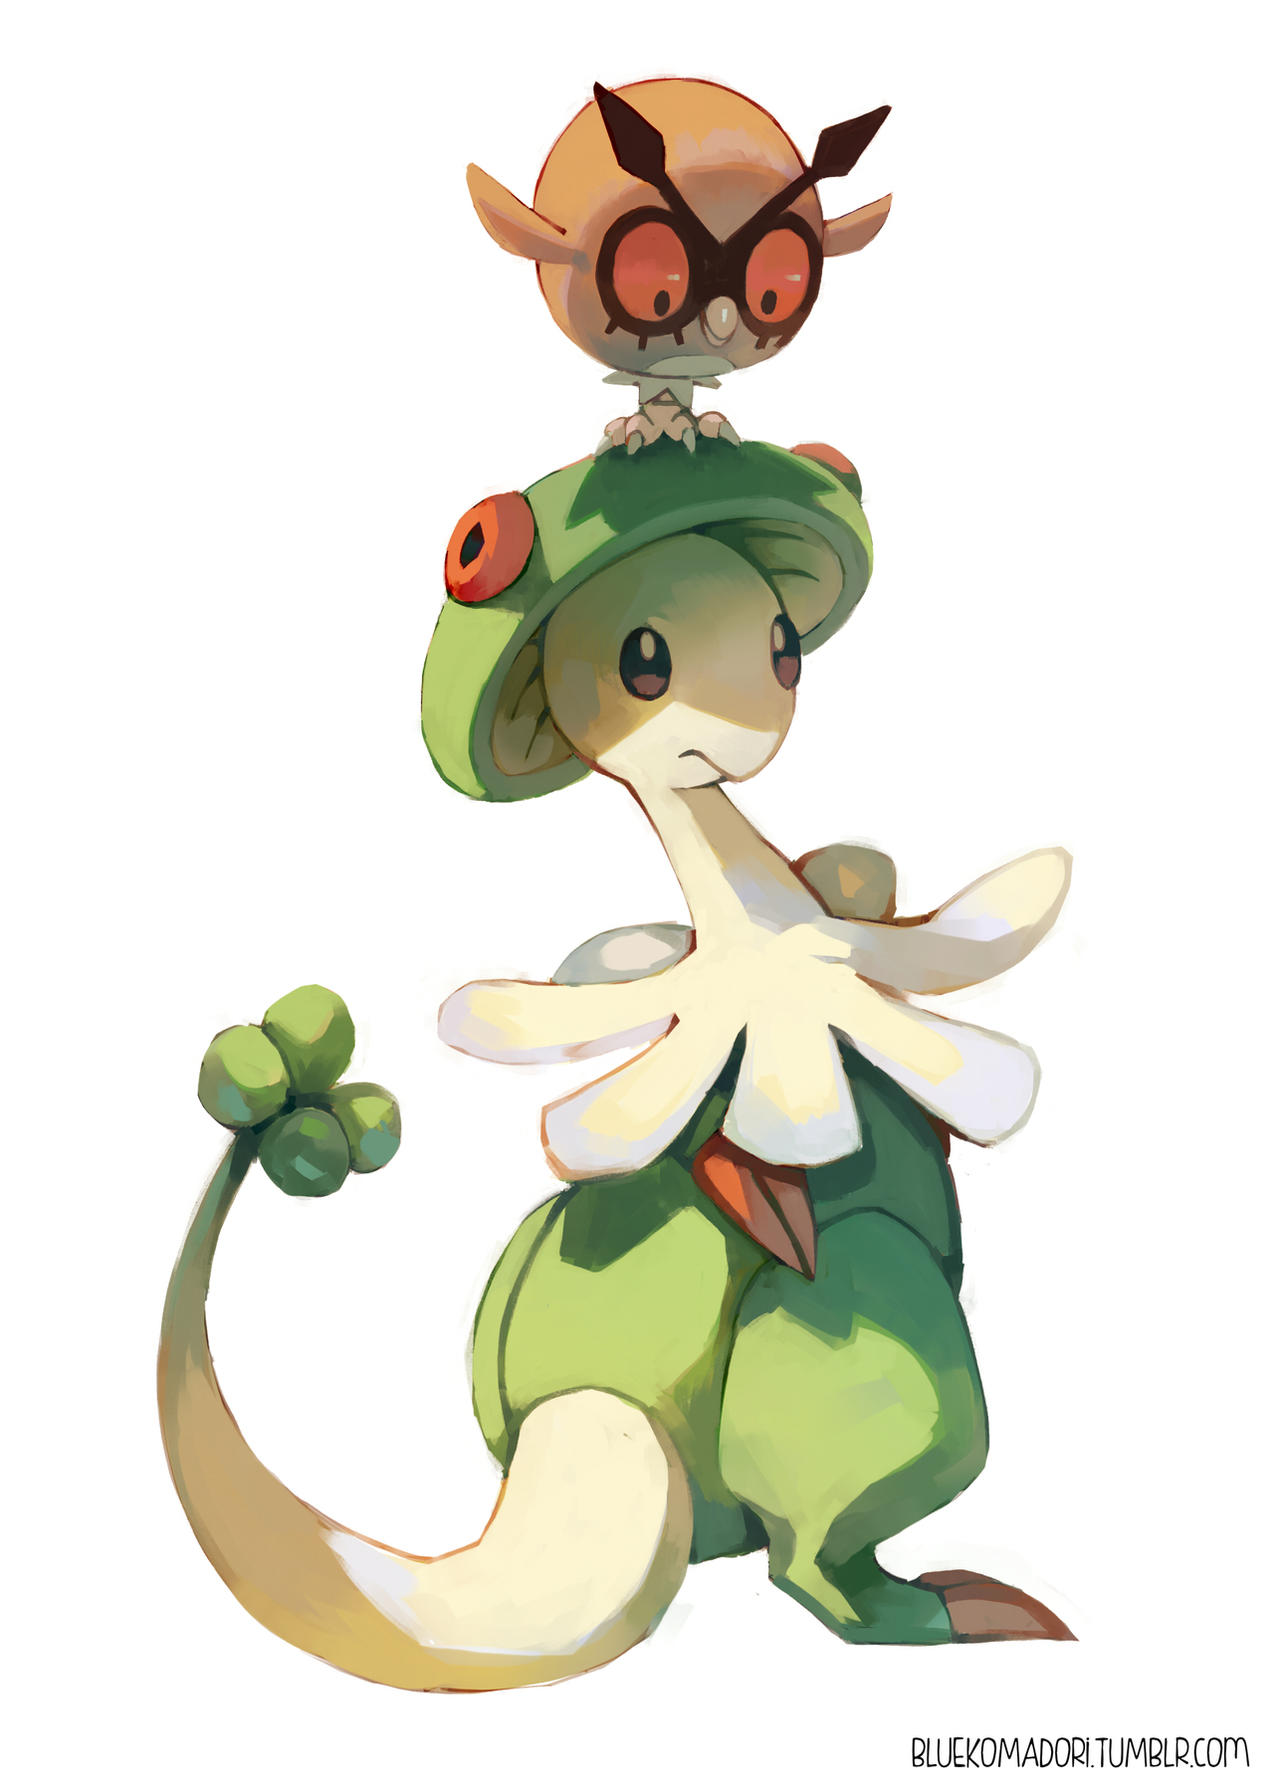 how to get spore on breloom